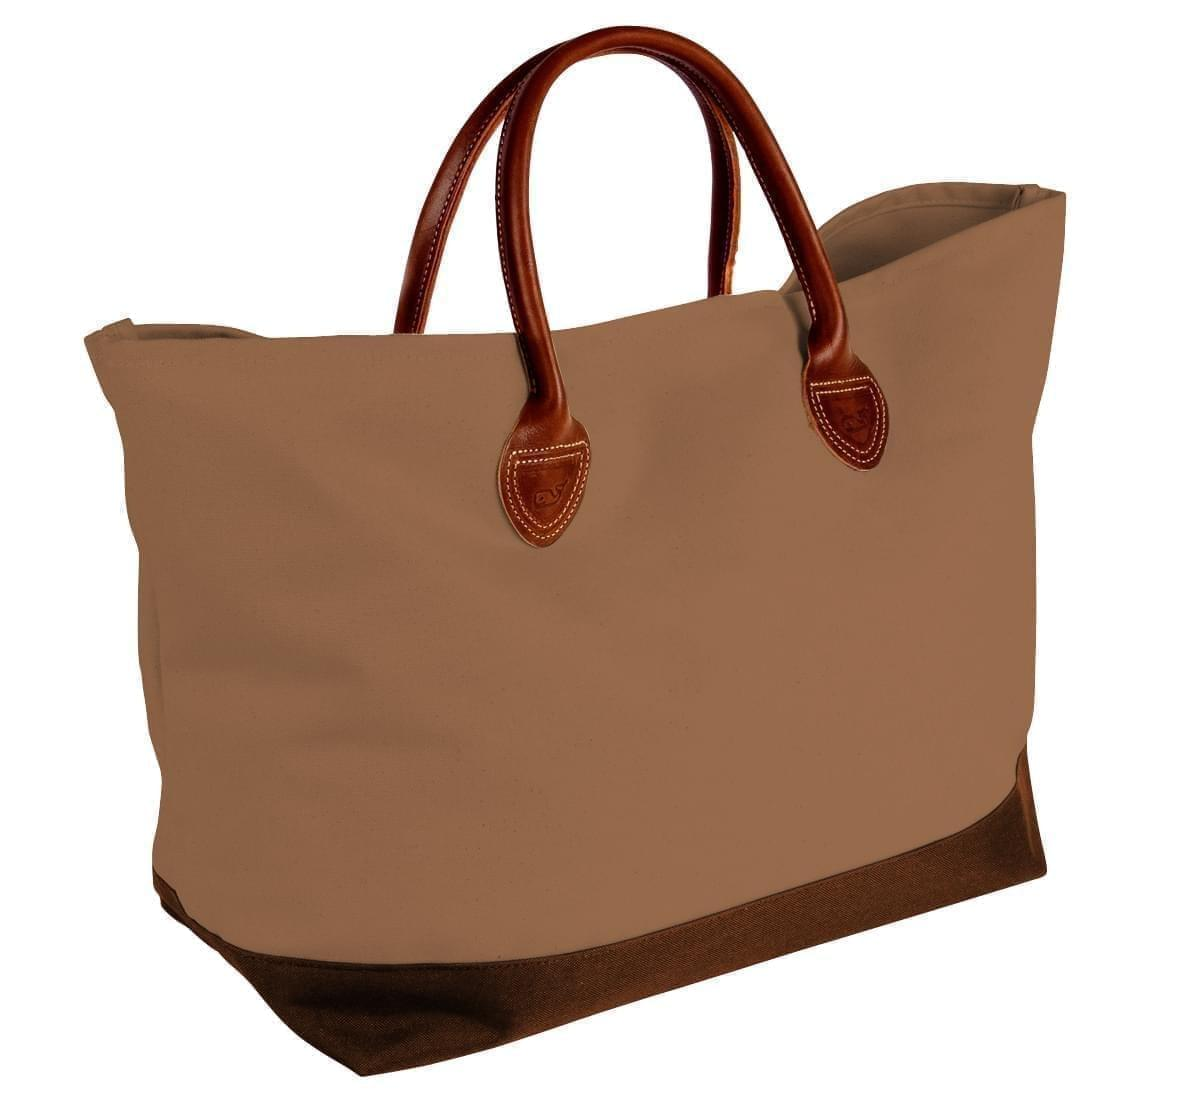 USA Made Canvas Leather Handle Totes, Khaki-Brown, 10899-DJ9